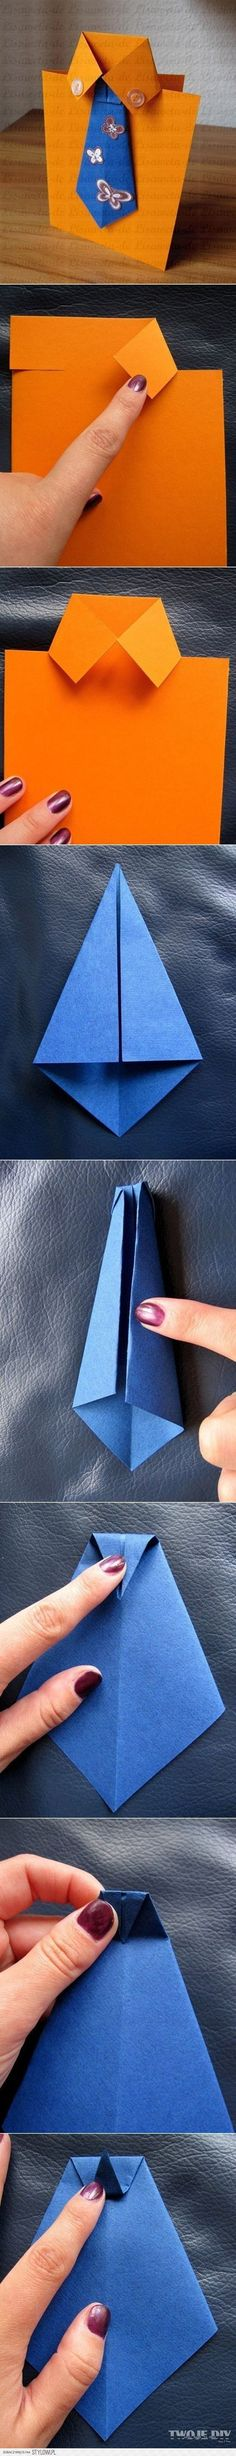 Cute DIY Father's Day Card Ideas | Necktie Card by DIY Ready at http://diyready.com/21-diy-fathers-day-cards/